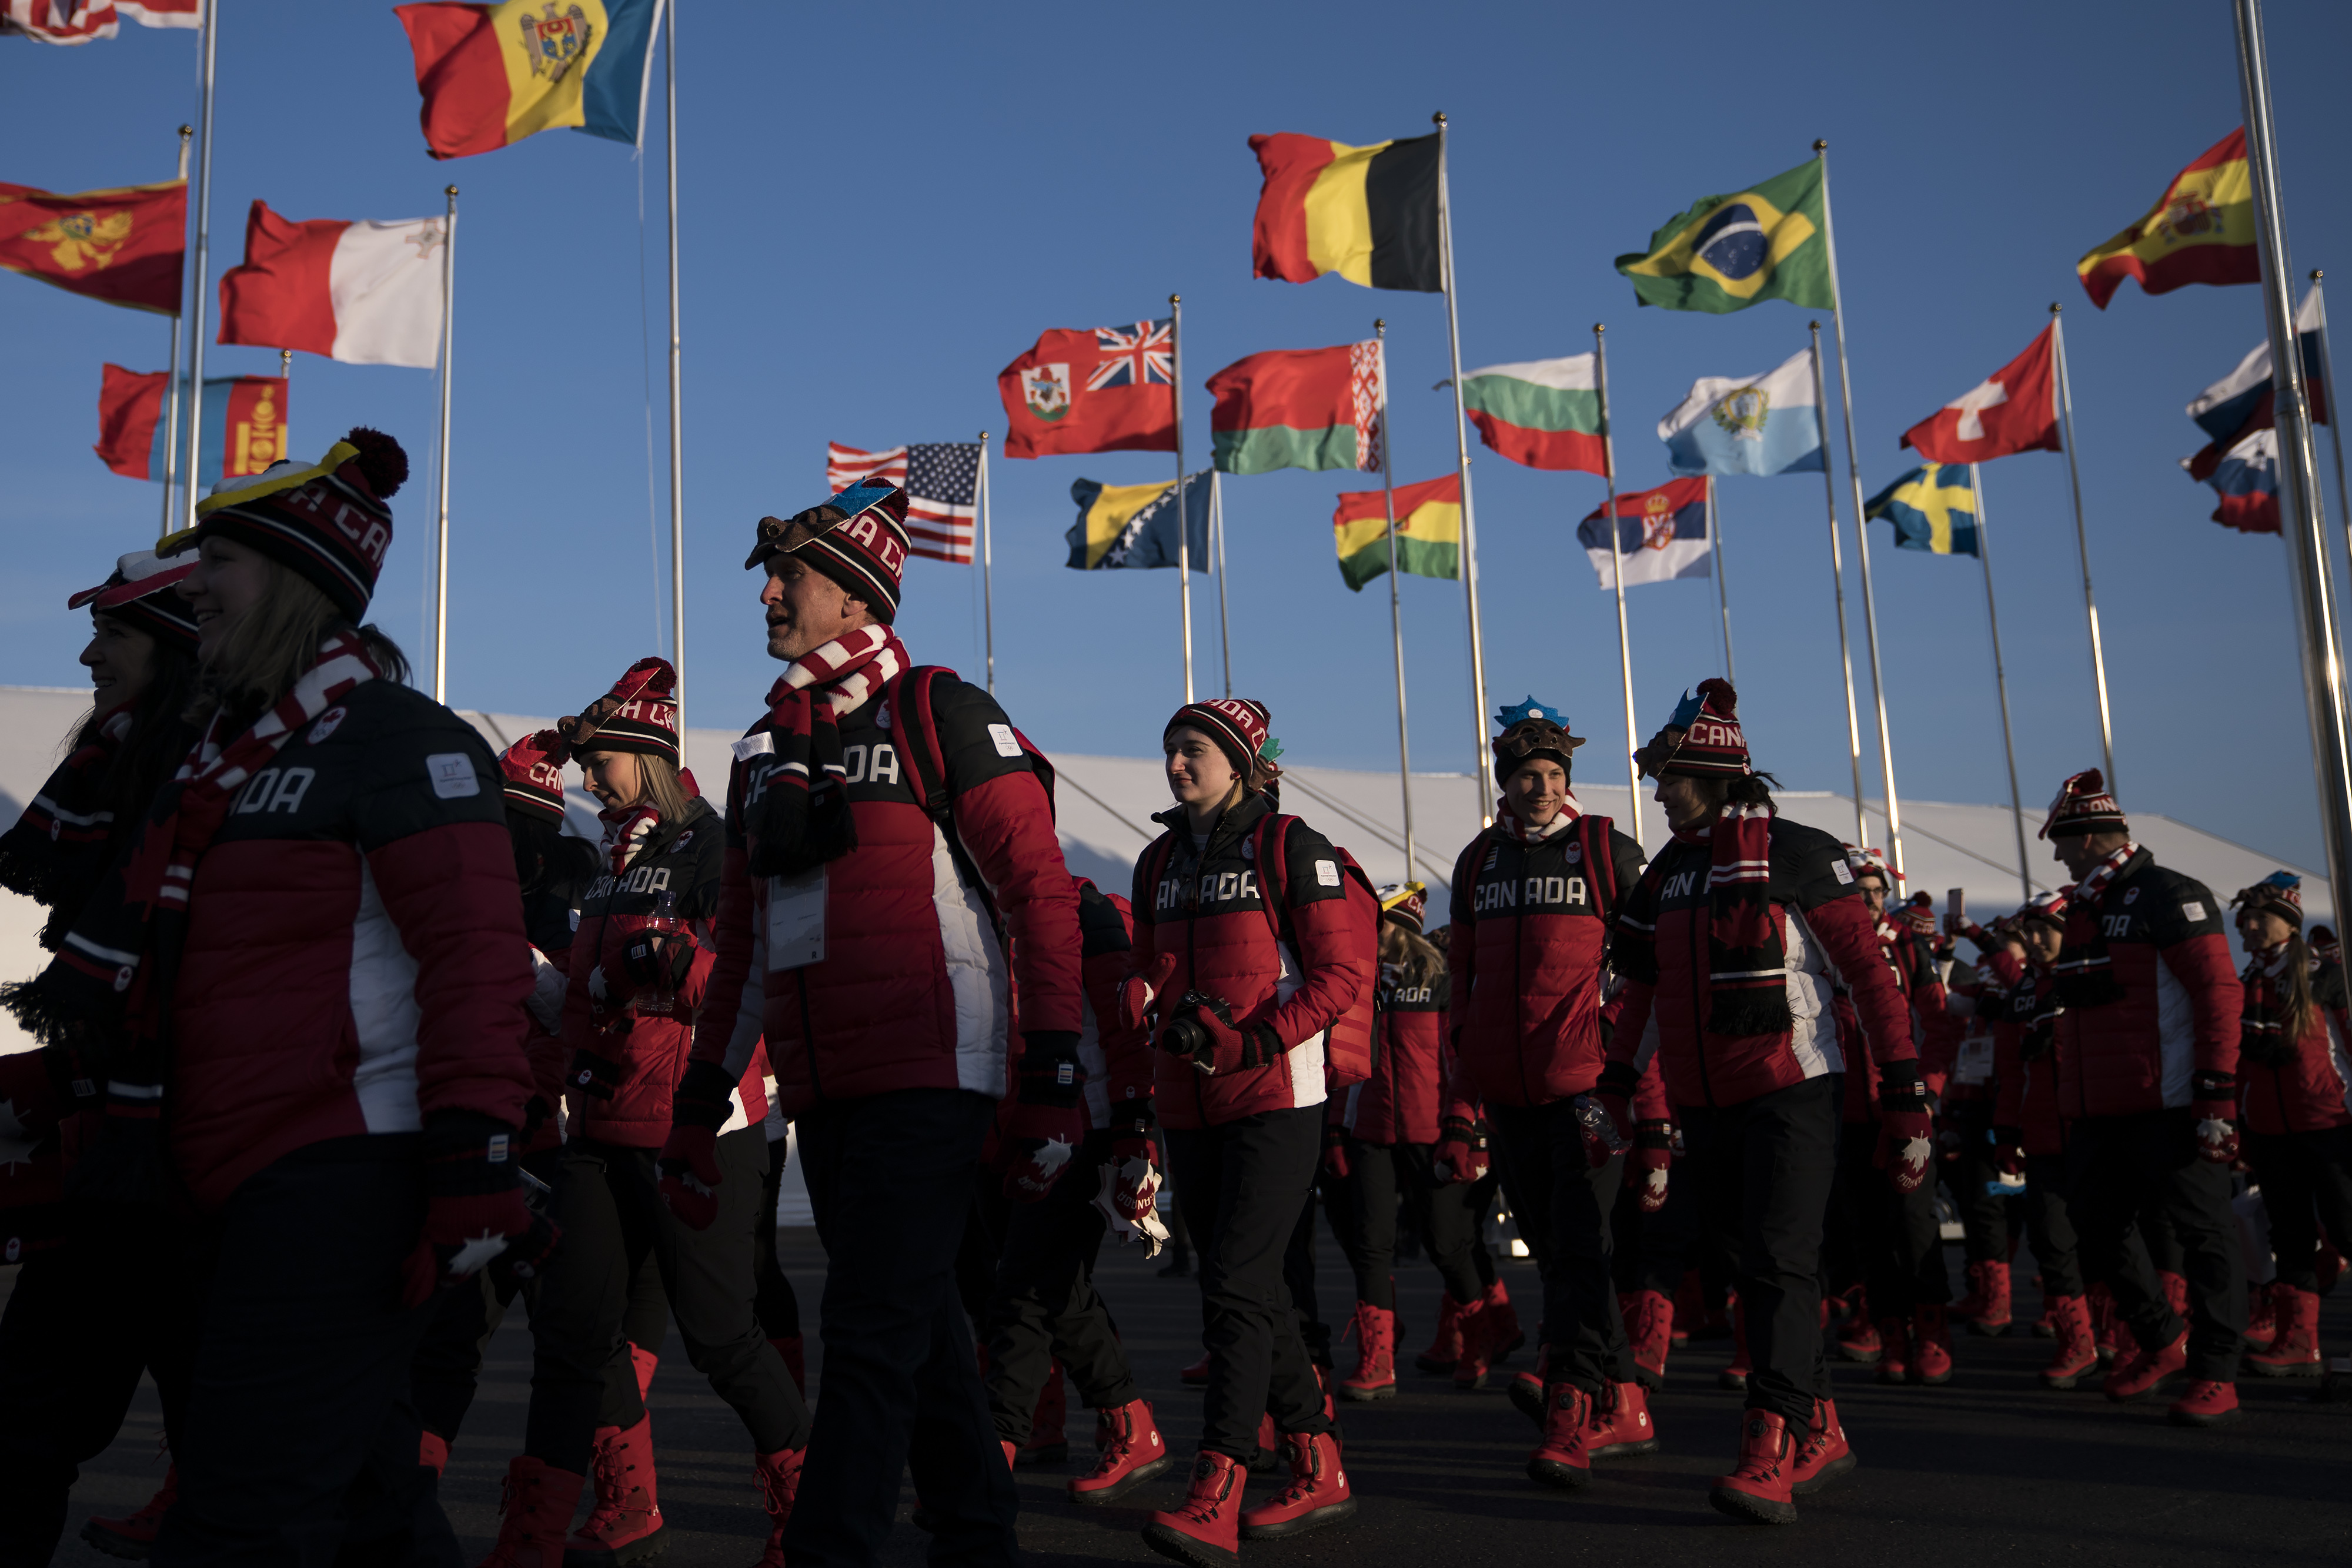 The day after: Pyeongchang breathes, bids Olympics farewell